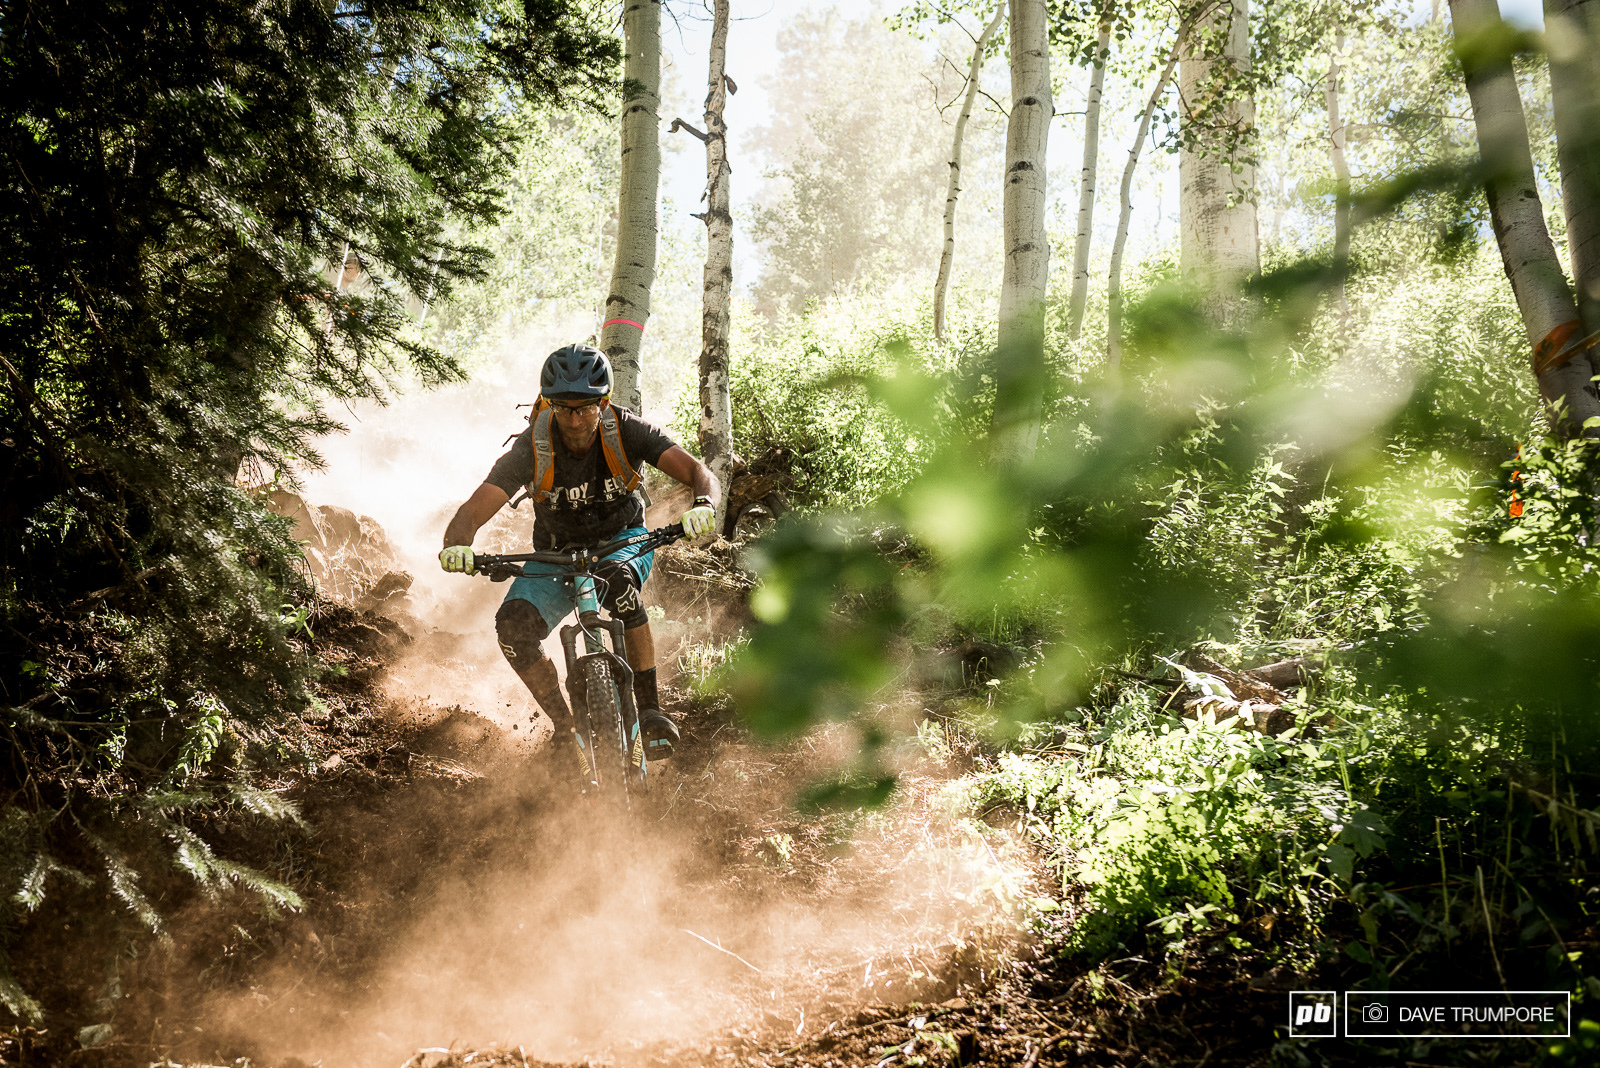 Lots of fresh cut trails were added to stages 1 and 3 and while the surface is fairly soft and almost loamy it is turning to dust very quickly in the dry summer heat.